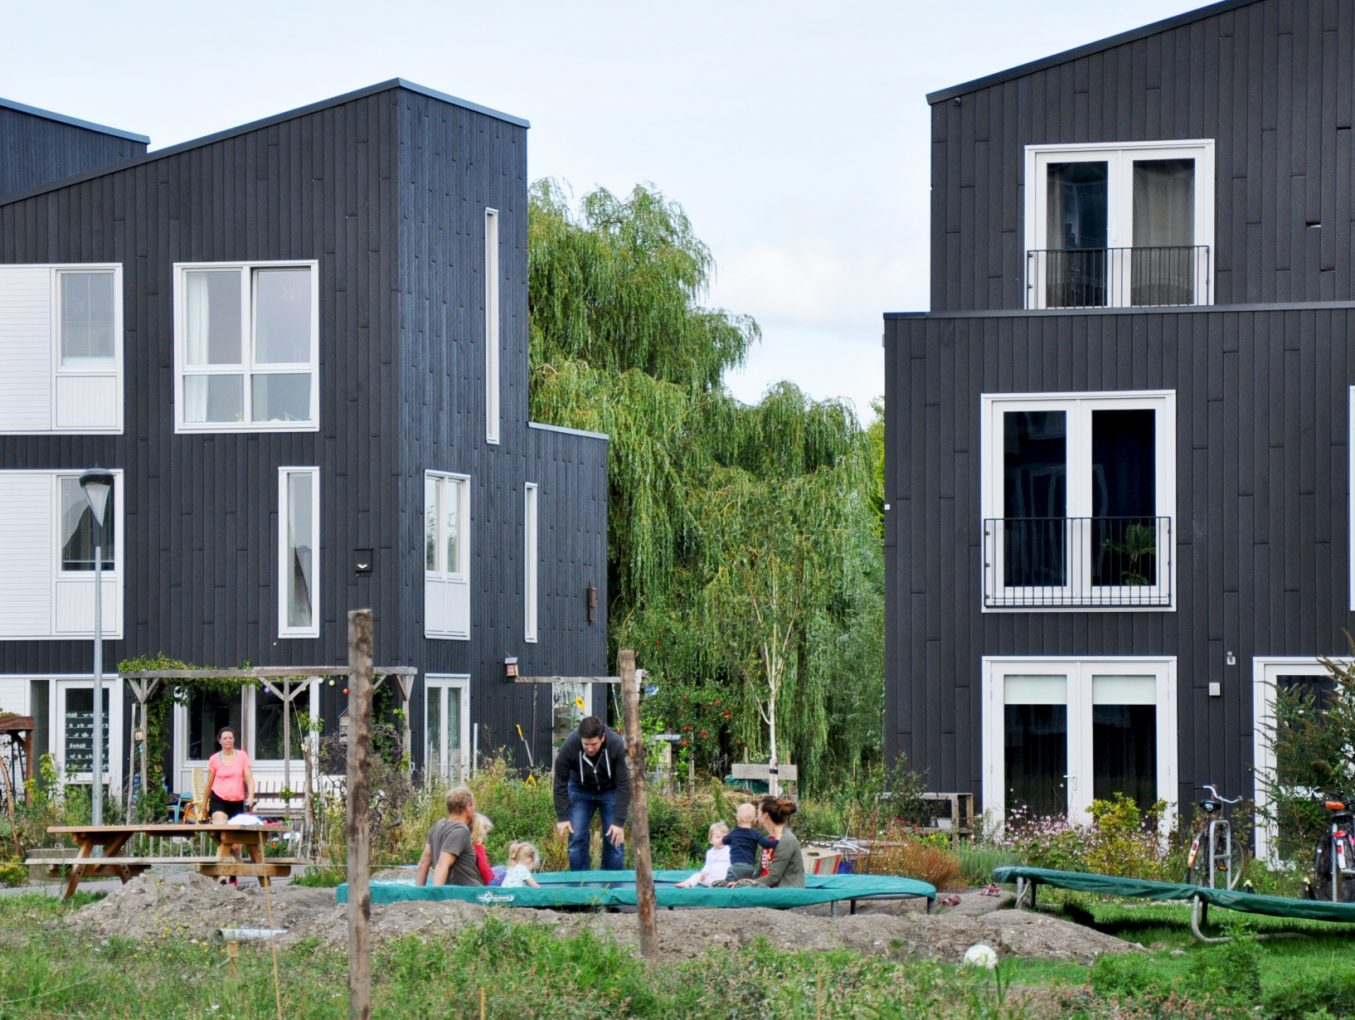 Geelong Sustainability Clever Living Seminar: Innovative Options for Affordable Housing - March 5